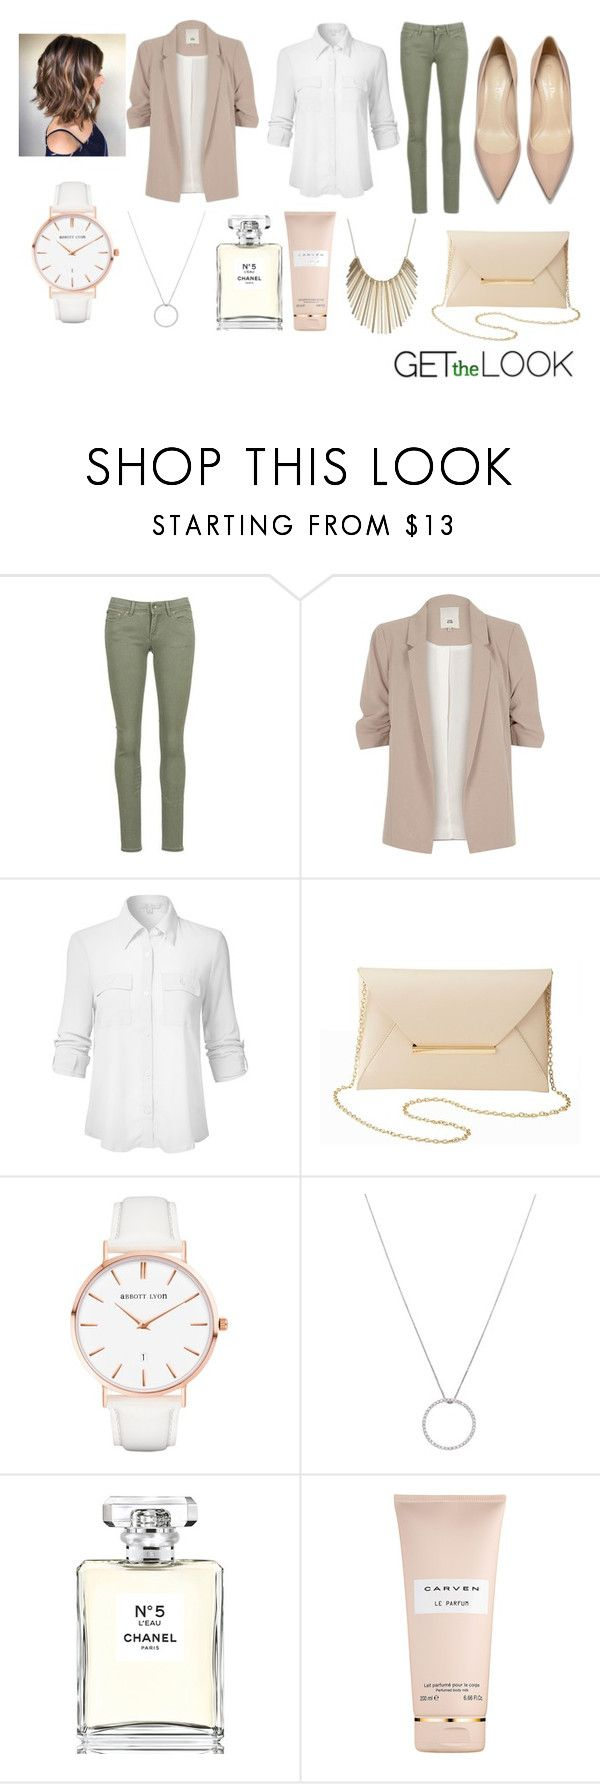 """Untitled #238"" by nikkiemery ❤ liked on Polyvore featuring Roxy, River Island, Charlotte Russe, Abbott Lyon, Roberto Coin, Chanel, Carven and Jennifer Lopez"